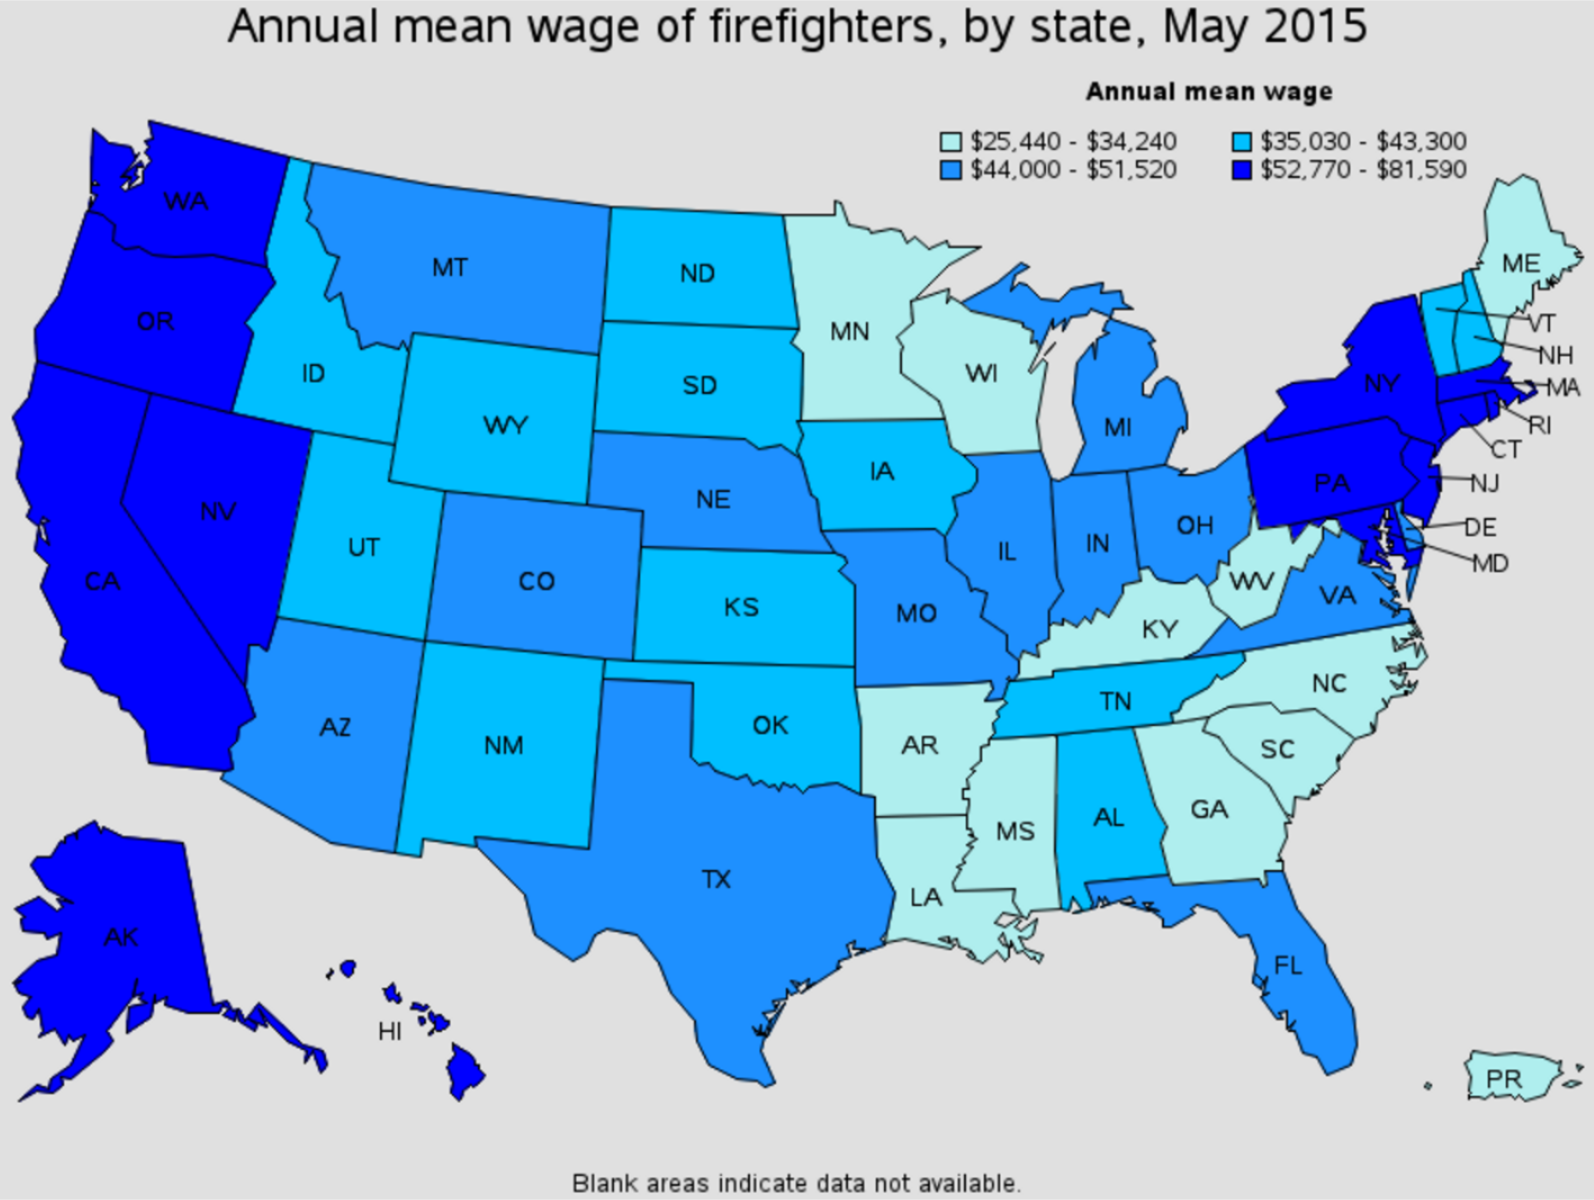 firefighter average salary by state Zephyrhills Florida